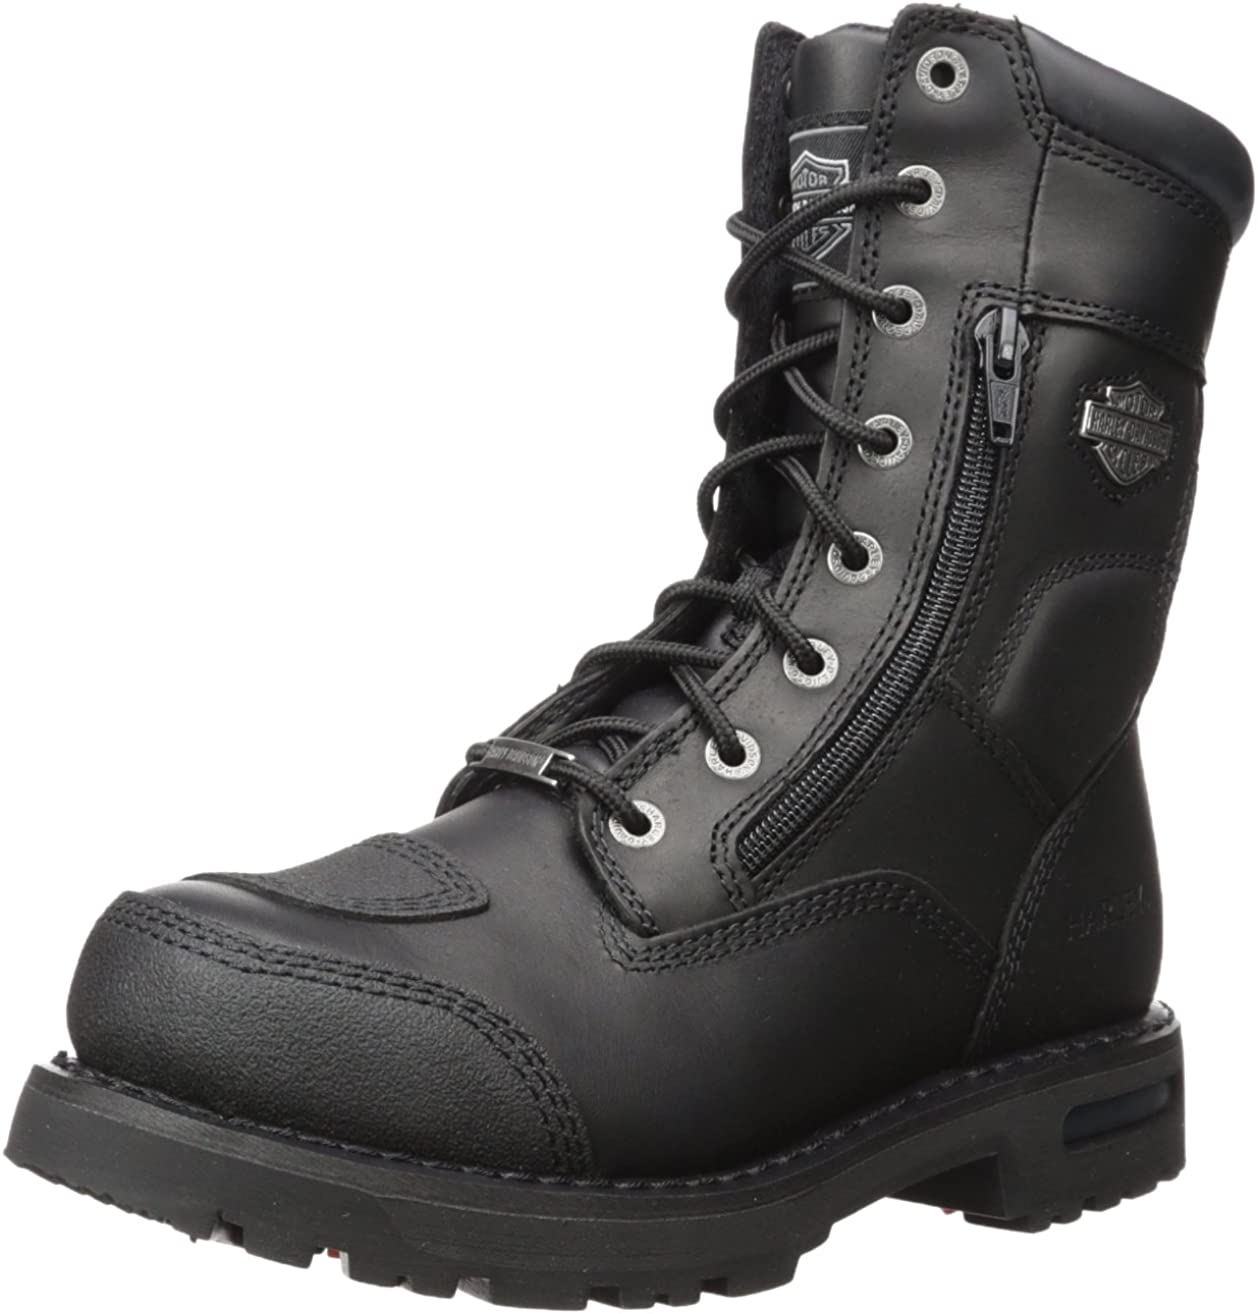 Harley-Davidson Men's Riddick 8-Inch Lace-UP Black Motorcycle Boots D98308: Harley-Davidson: Shoes